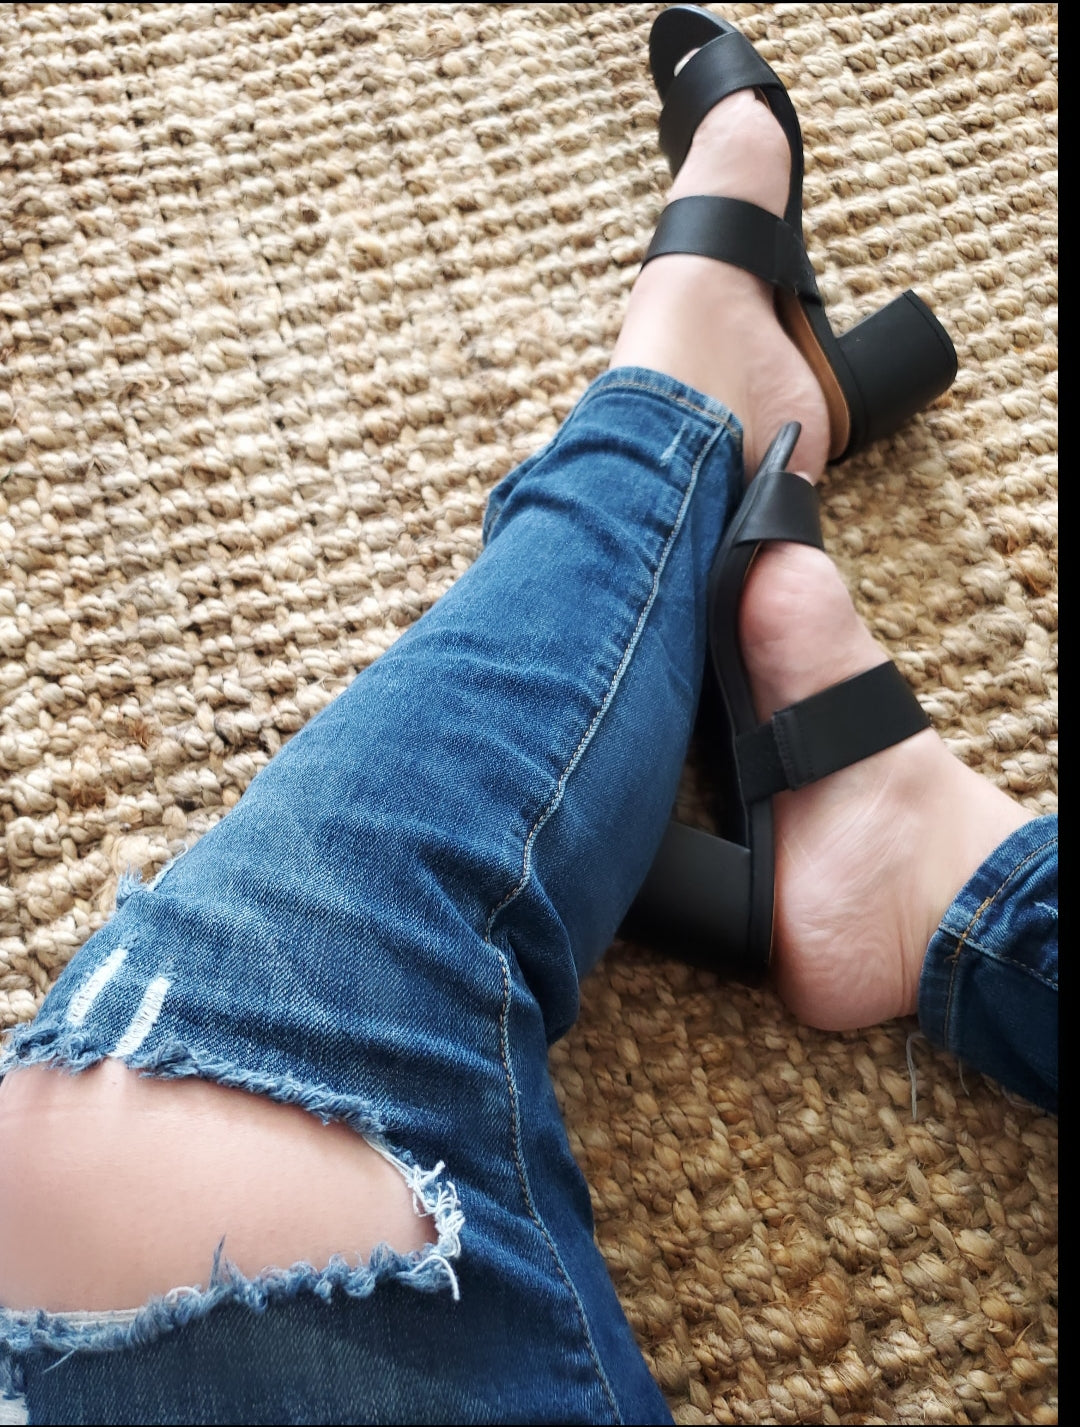 The Quynh Double Strap Shoe